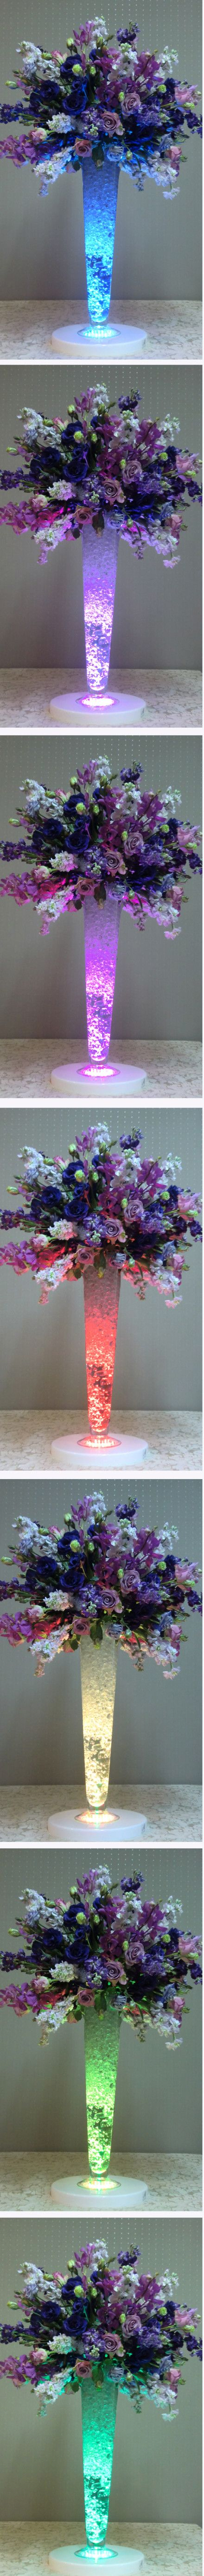 LED centerpiece--alternative to string light...? Not sure where to get or what they out in the vase..